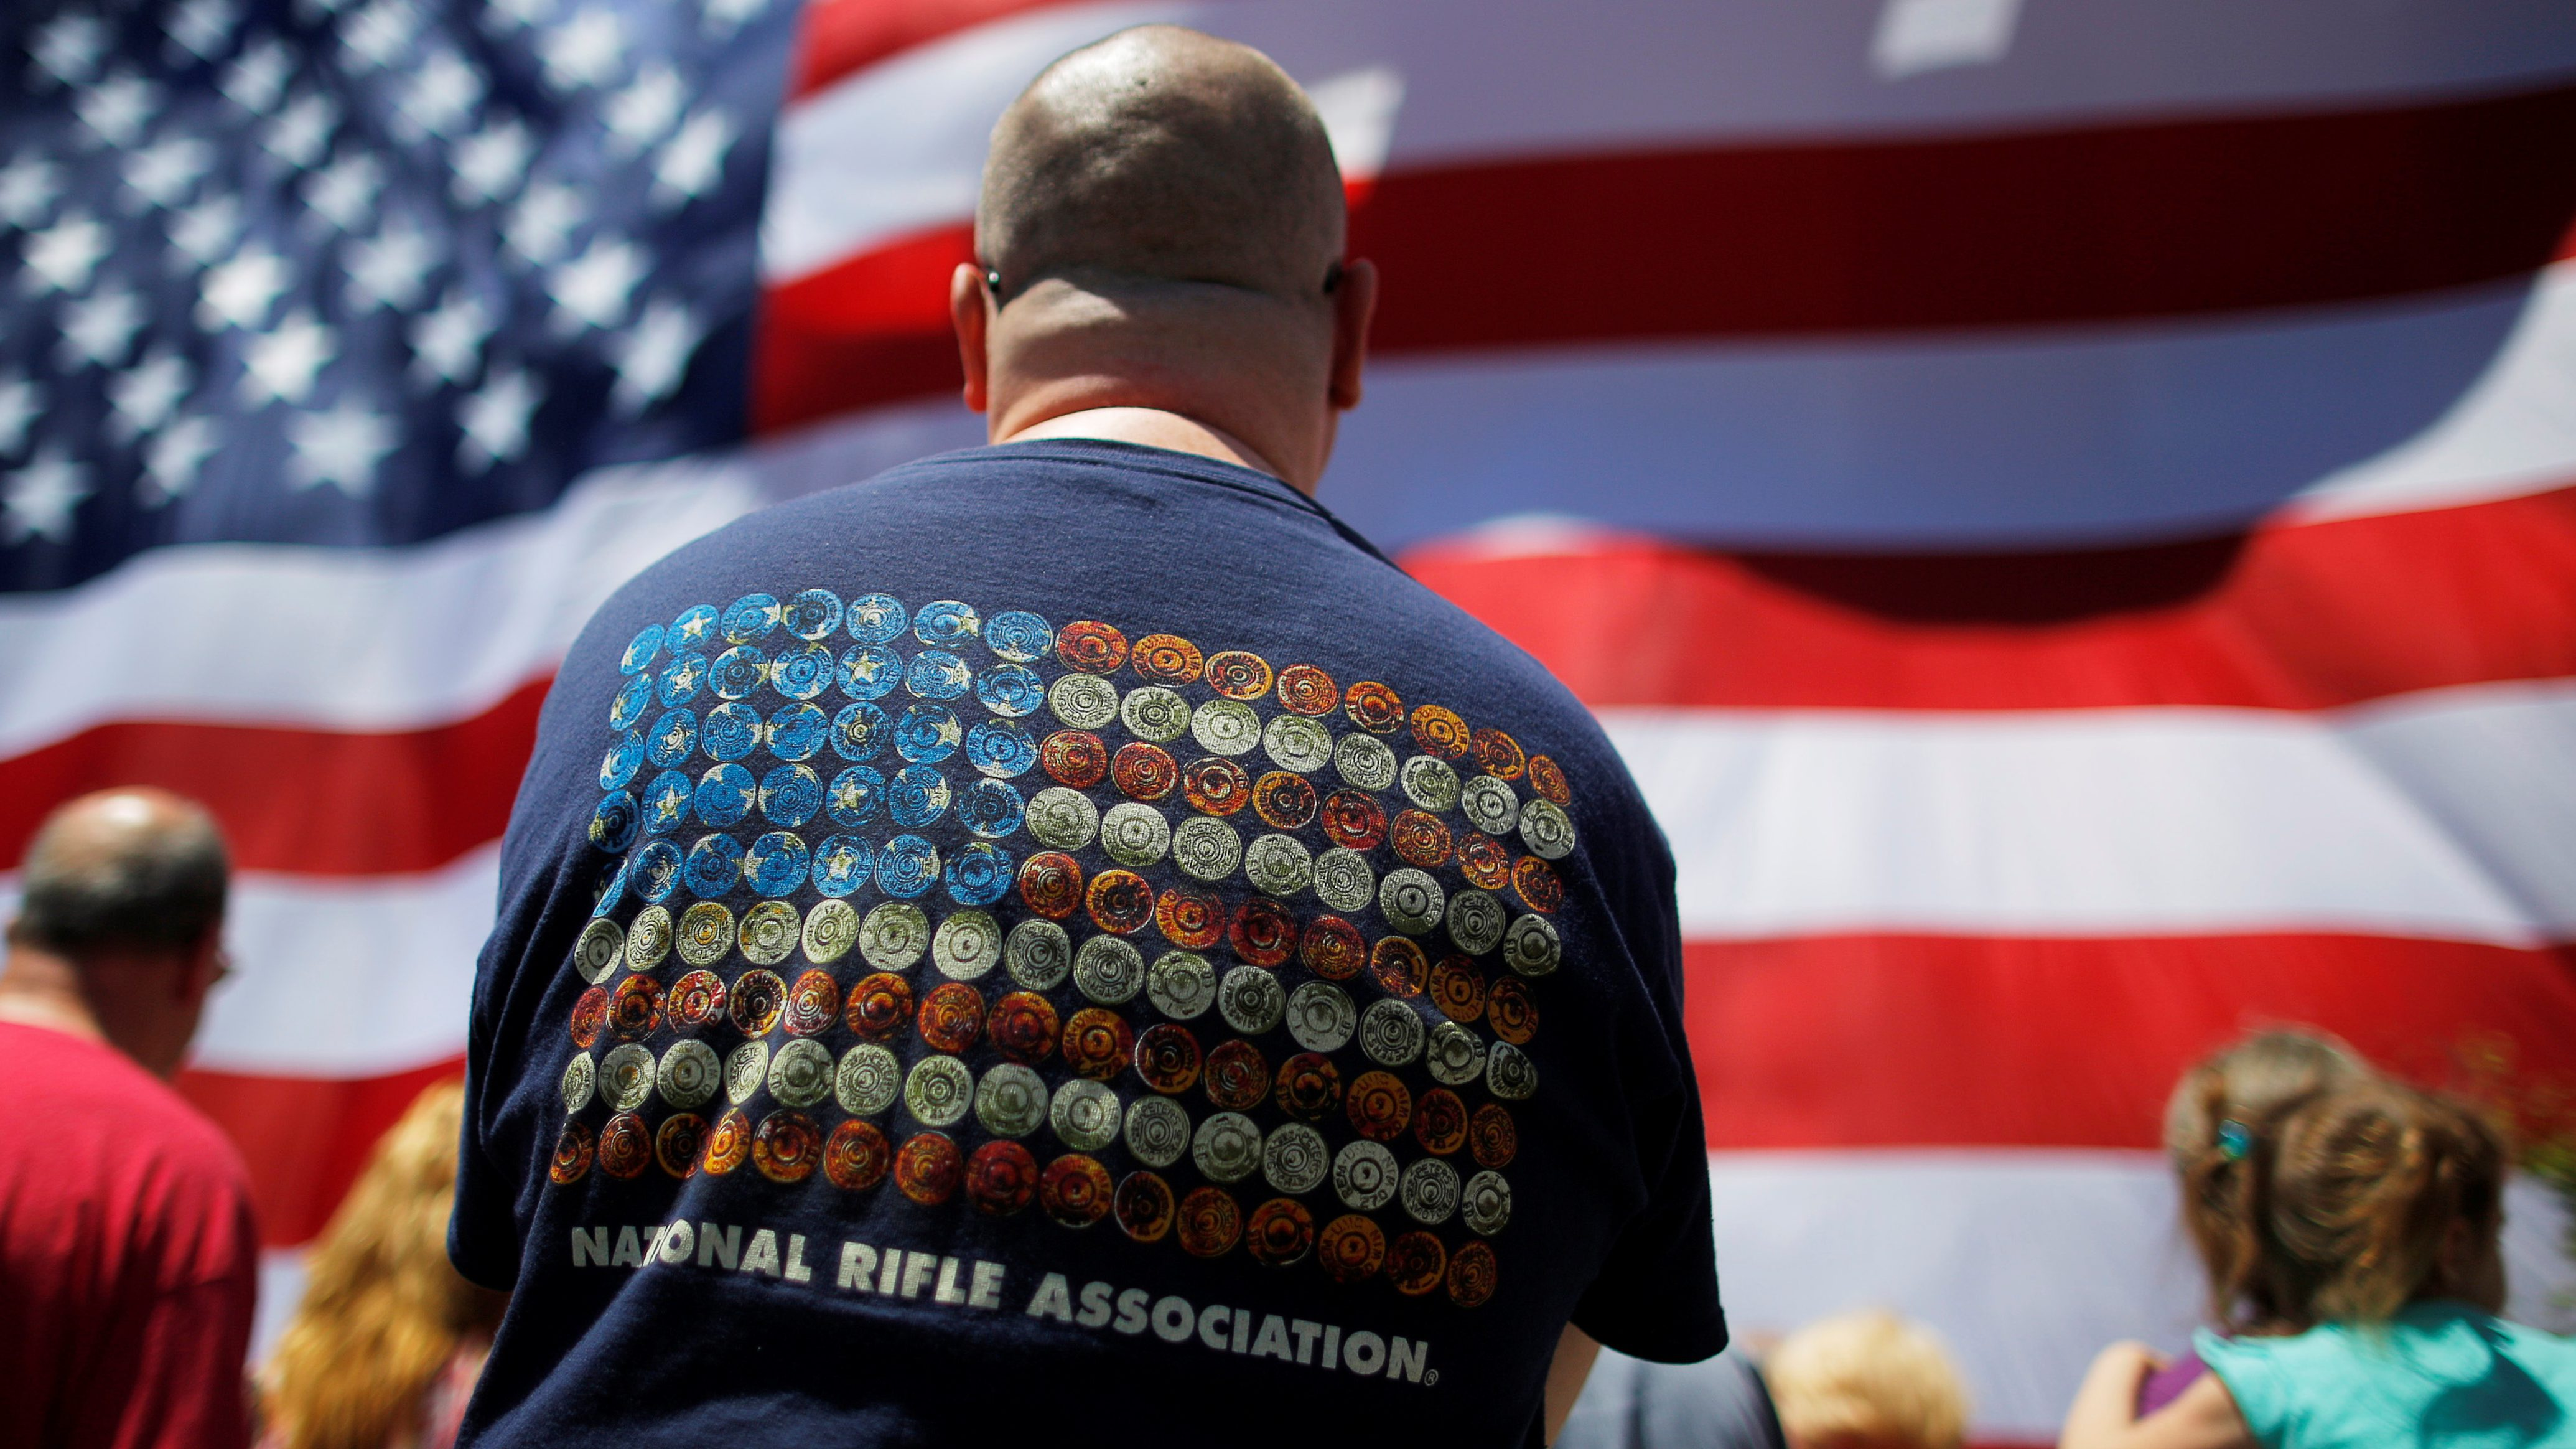 """Onlookers, including a man wearing a National Rifle Association (NRA) t-shirt, watch as a 95-by-50-foot American flag is unfurled on the side of an apartment complex, a replica of the """"The Great Flag"""" that was spun, woven, dyed, constructed and displayed on the same building by Amoskeag Manufacturing Company in 1914, in Manchester, New Hampshire, U.S., June 14, 2017.  REUTERS/Brian Snyder - RC1EDCBF4BB0"""